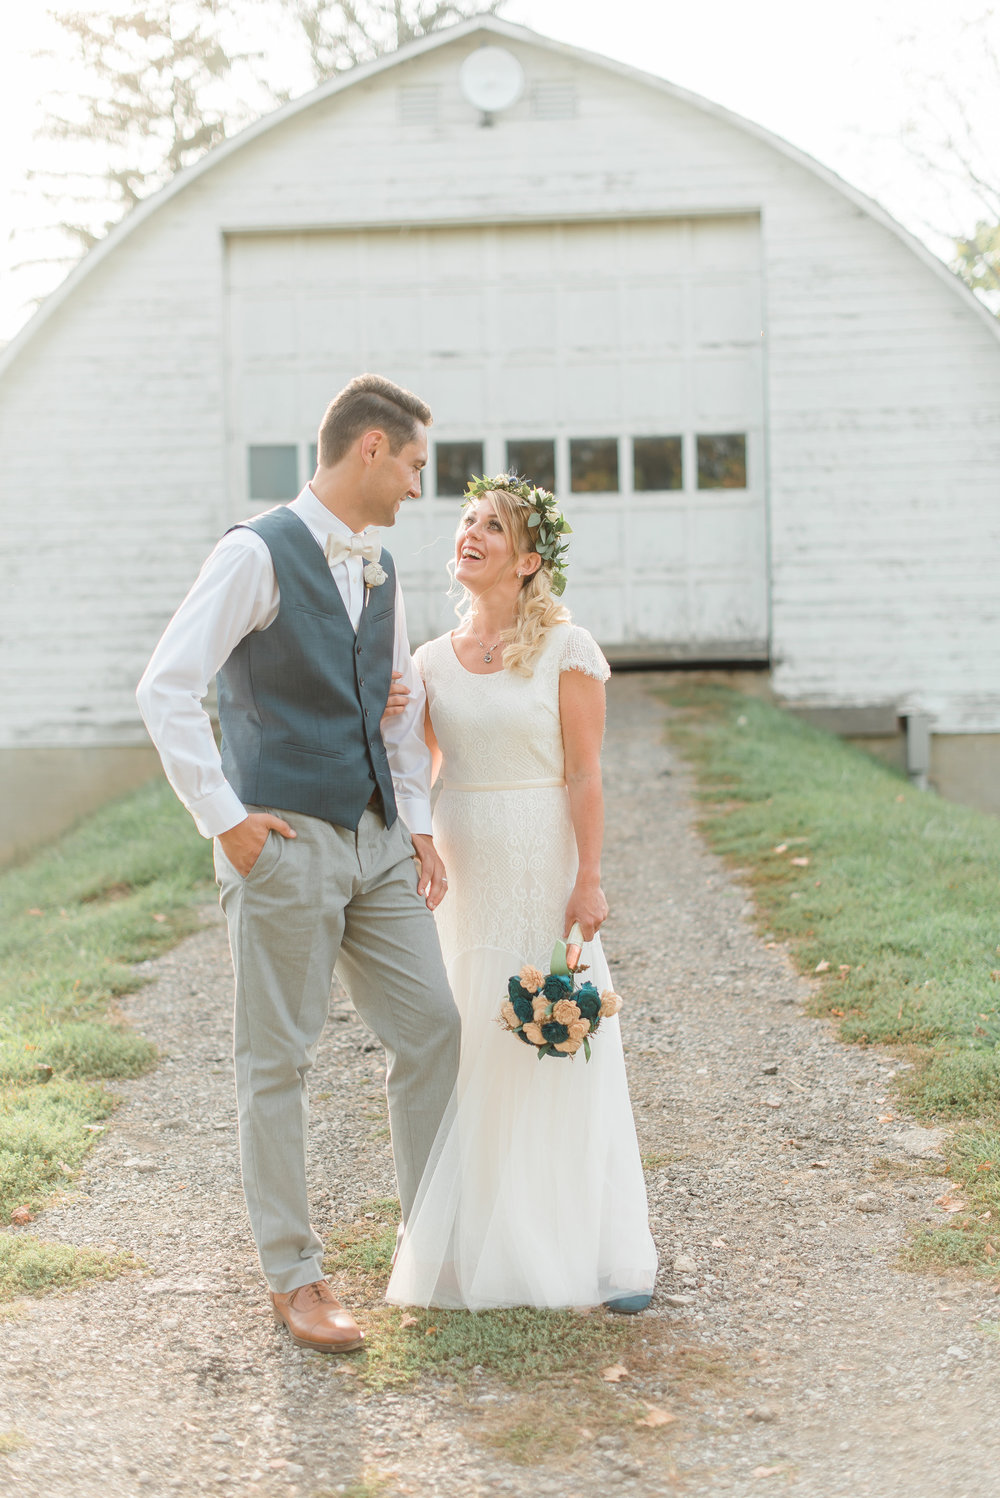 pittsburgh-wedding-photographer-engagement-barn-farm-diy-ecofriendly-ironsmillfarmstead0205.jpg